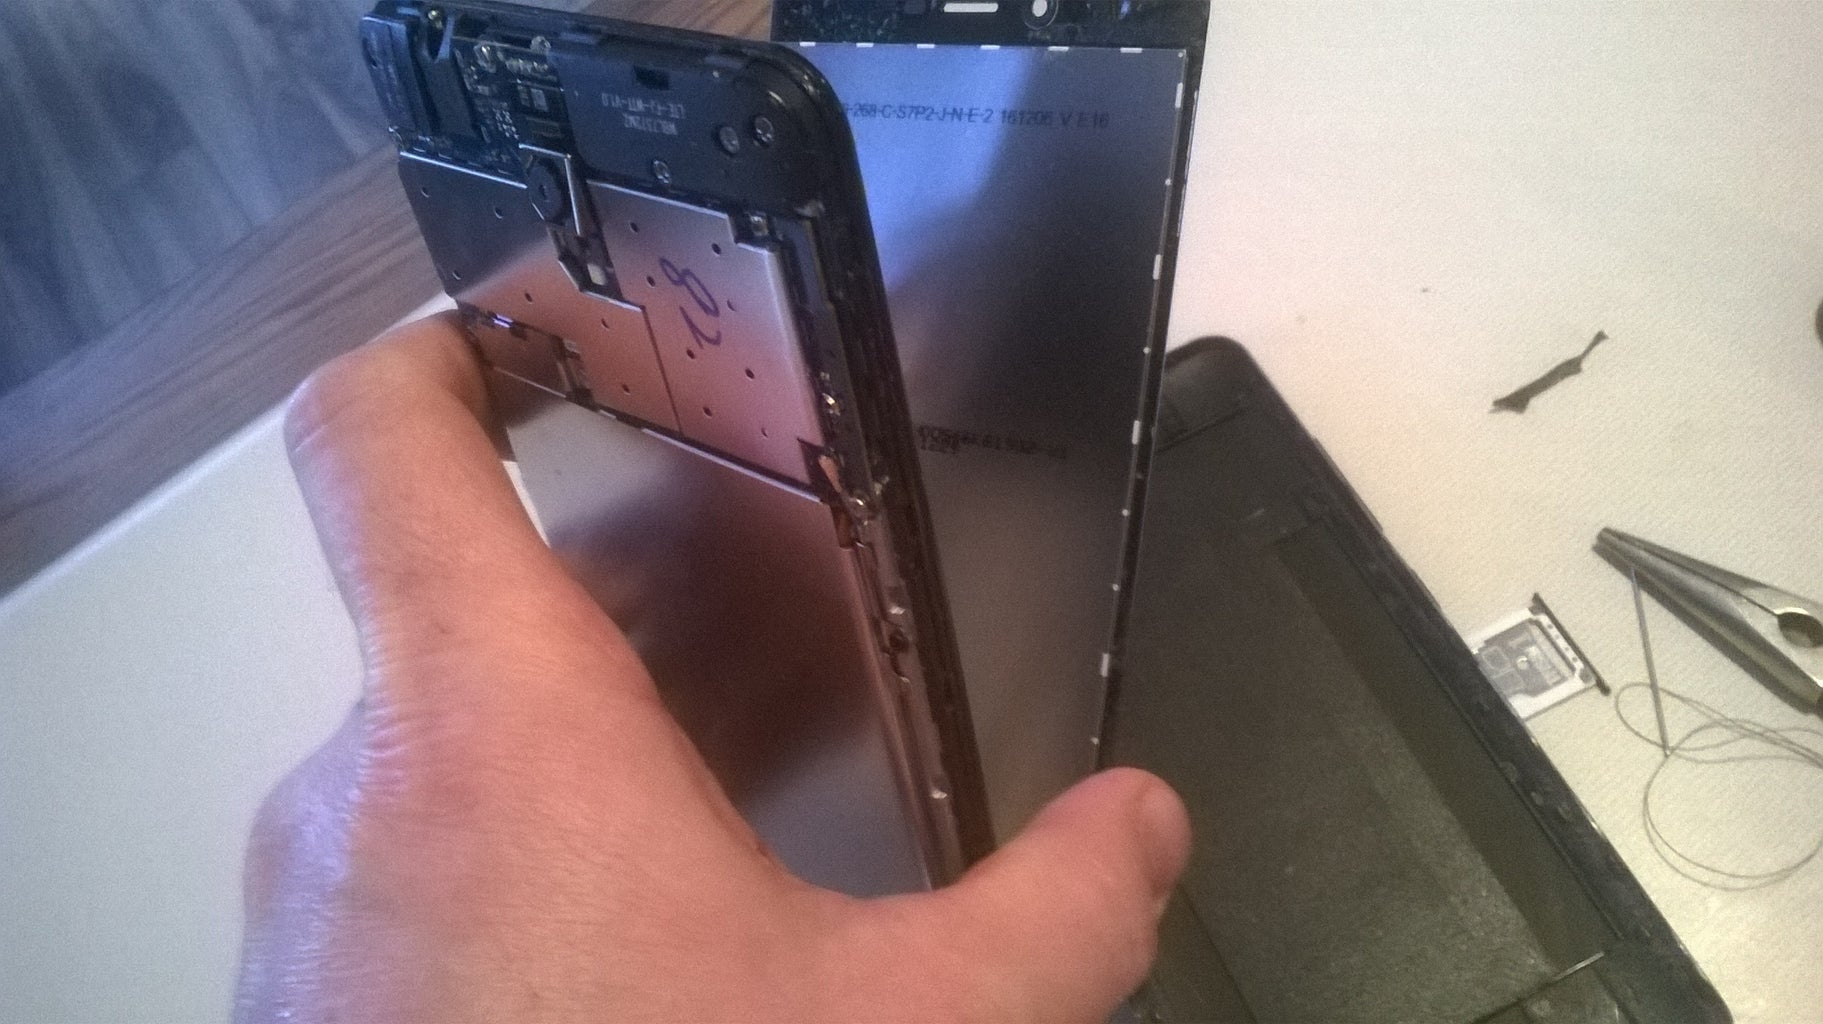 Remove the Back and Separate the Screen From the Rest of the Phone.